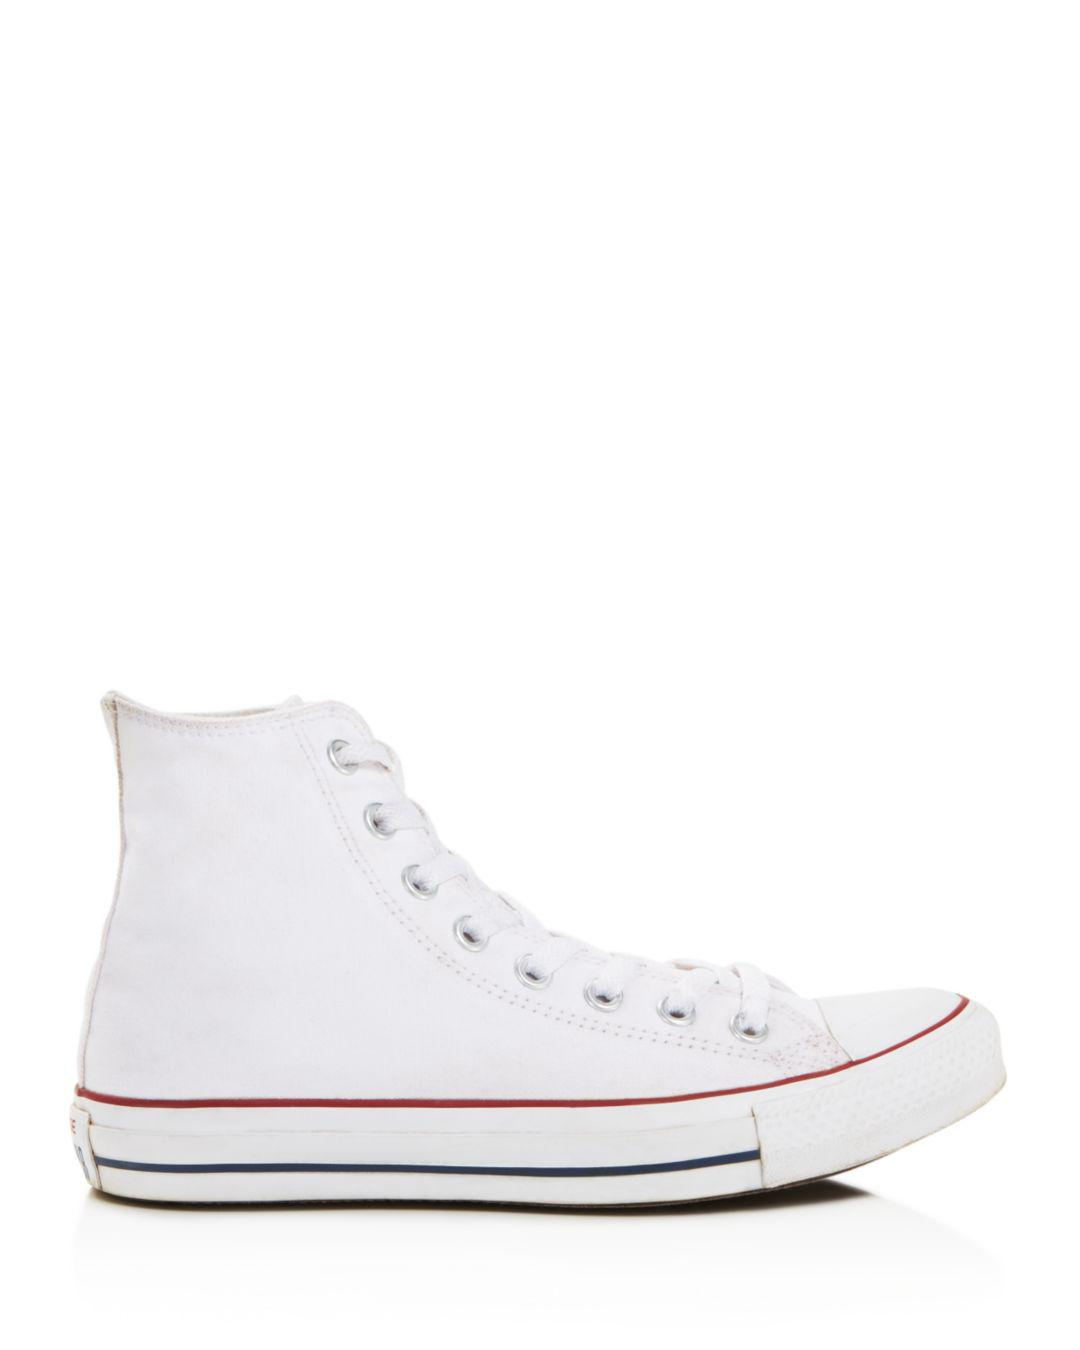 1109ac2ce9d8 Lyst - Converse All Star Hi Top Women s Trainer White in White - Save 36%